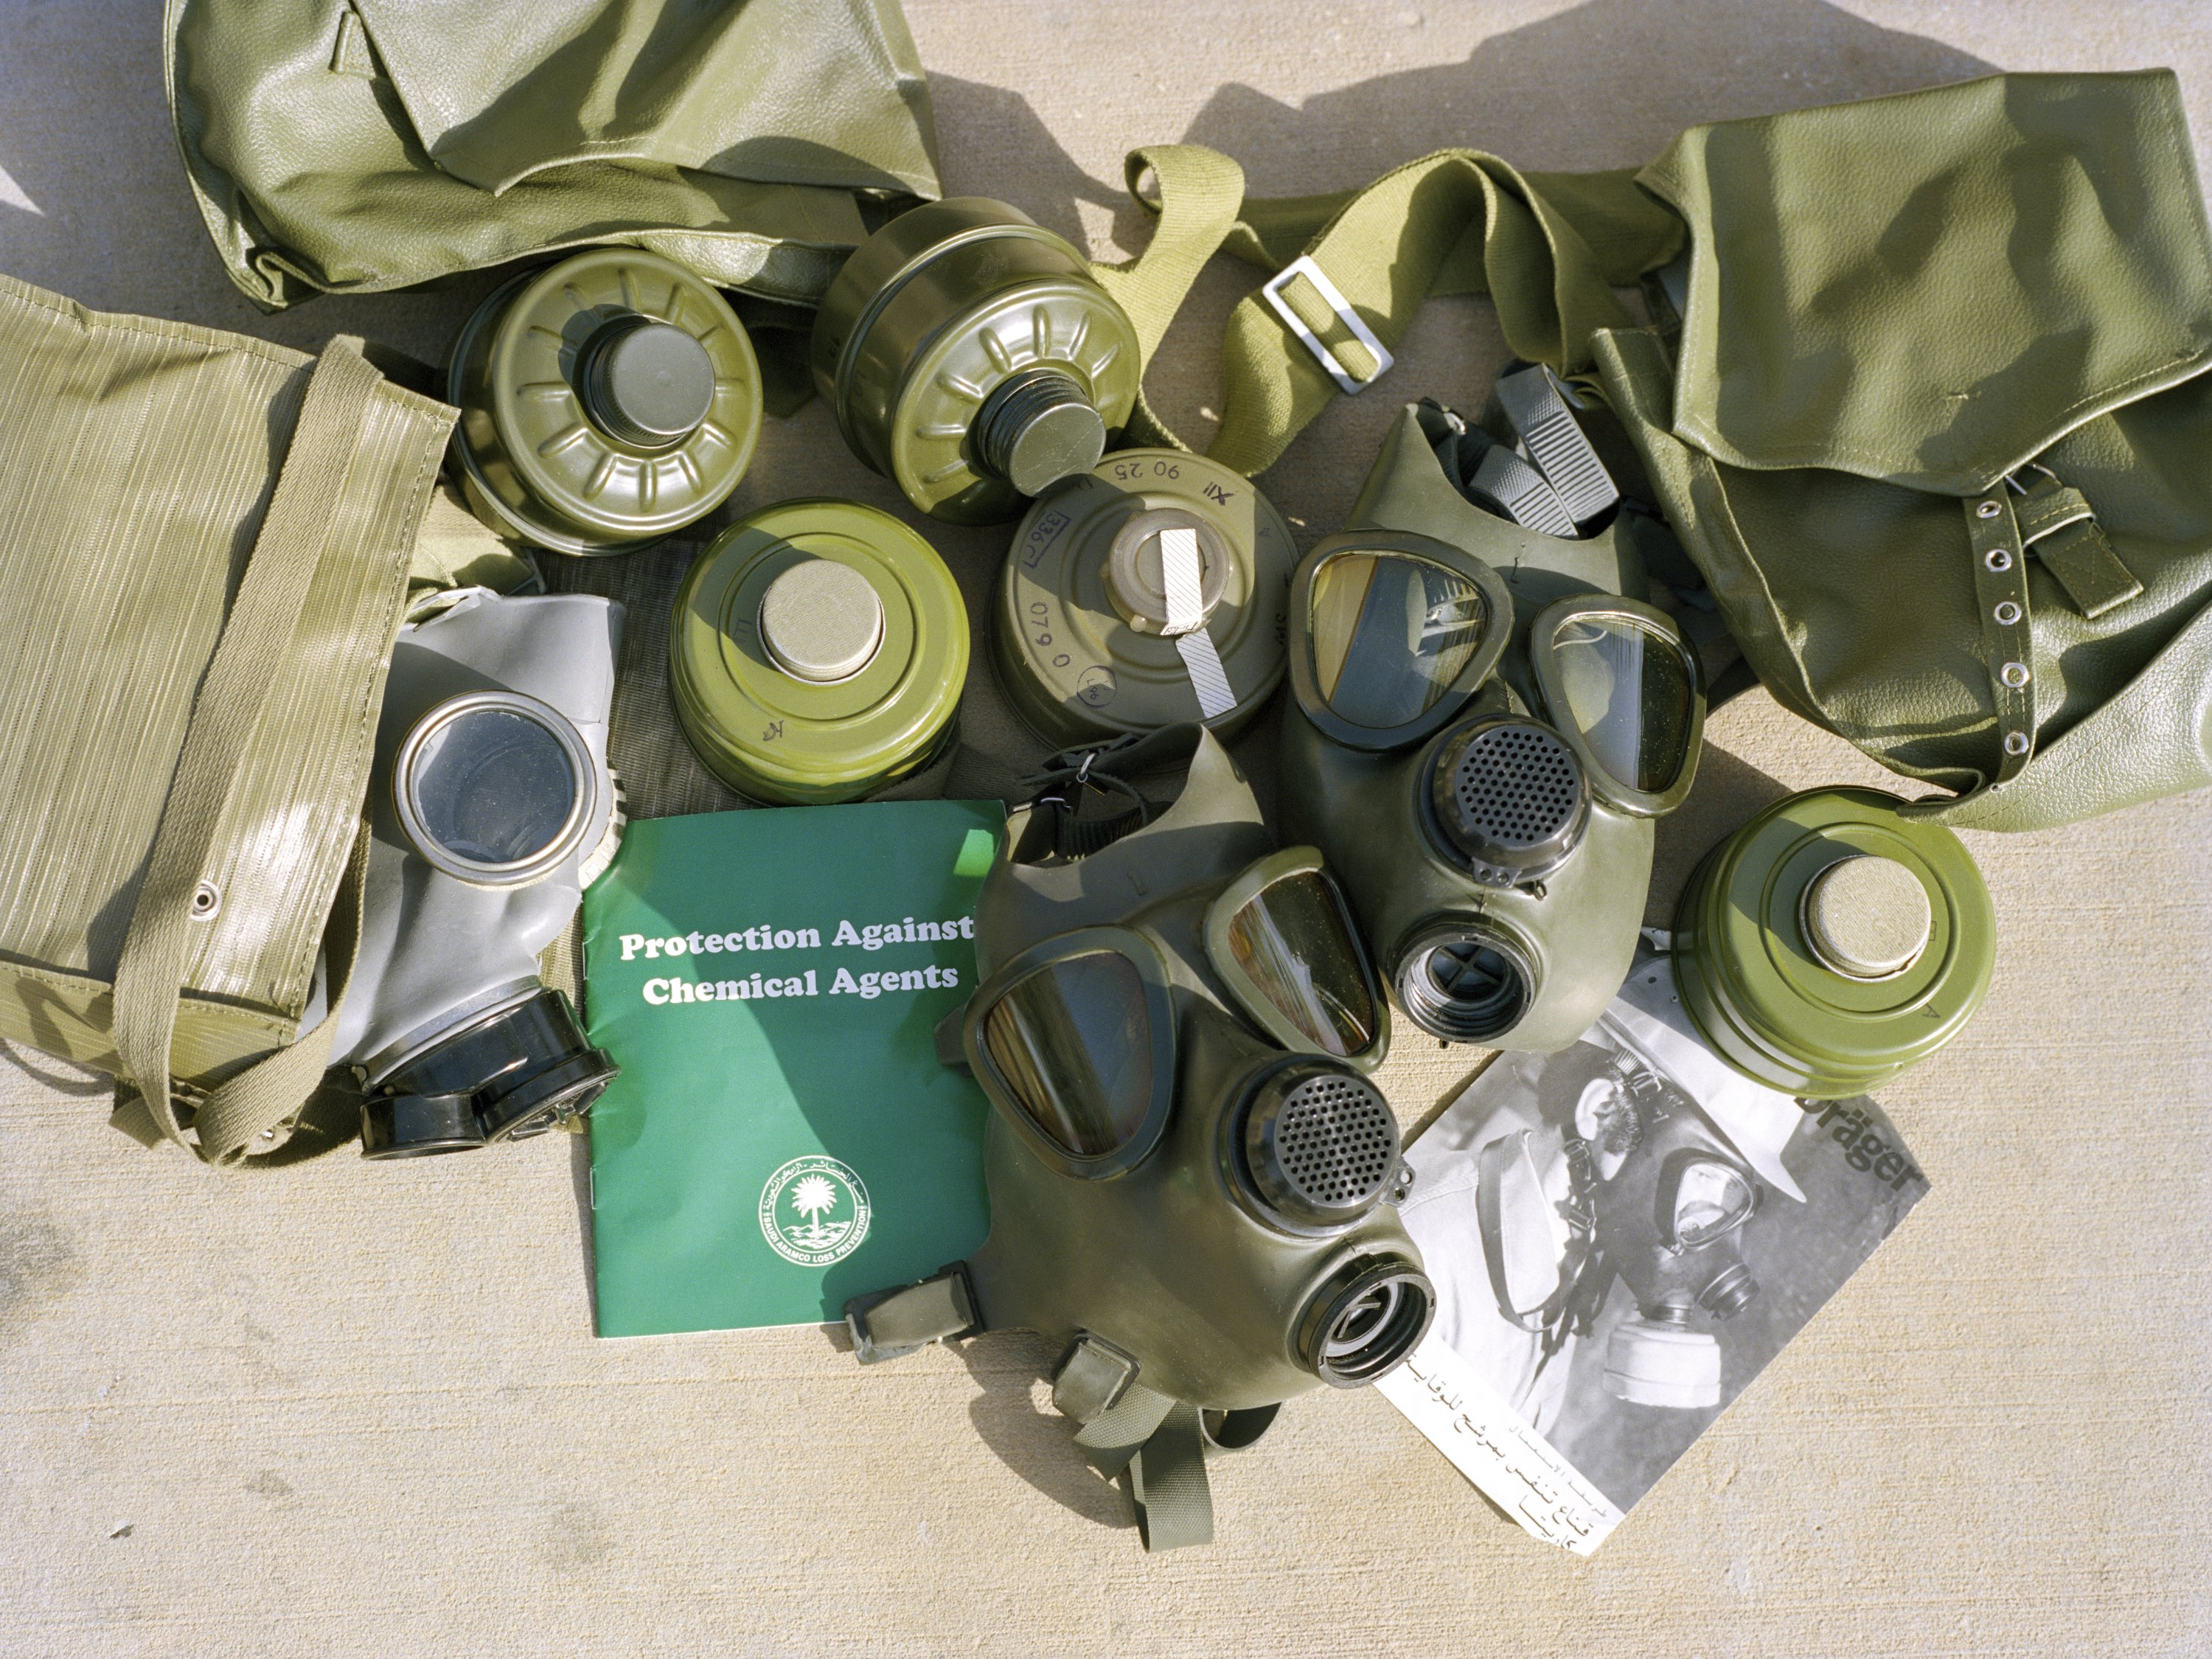 Gas masks issued to my family by Aramco during the Gulf War in 1990.